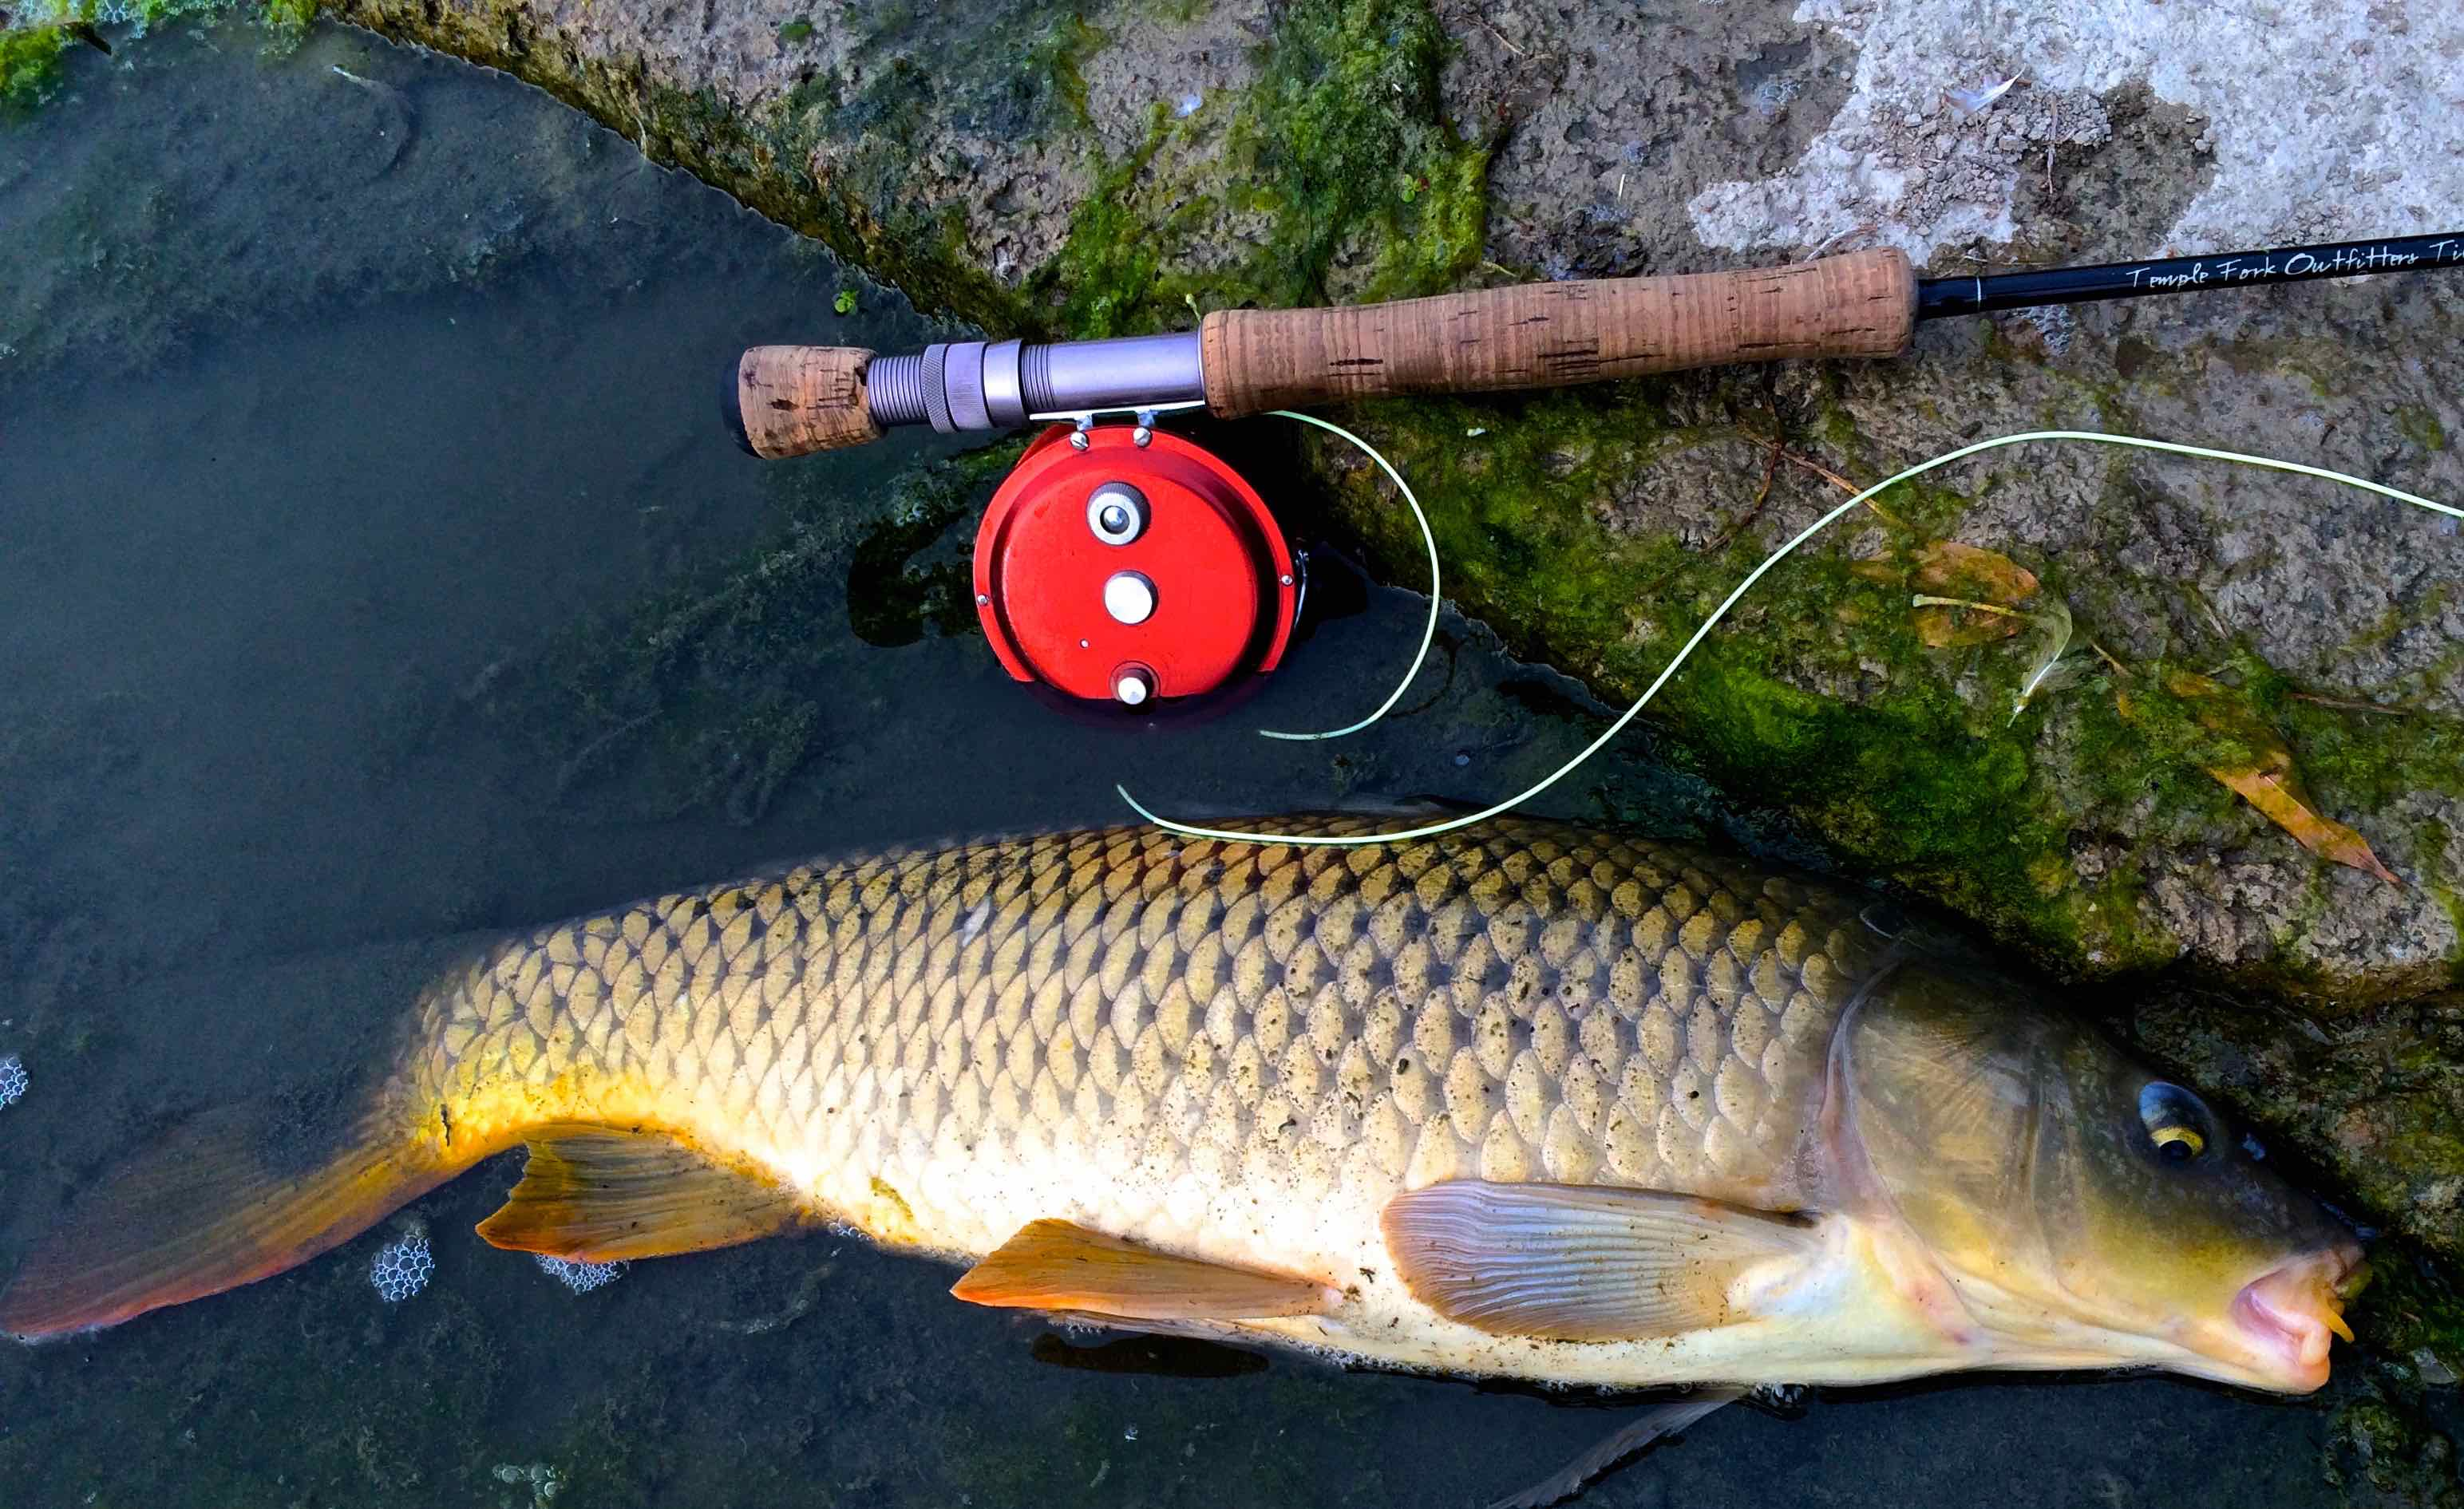 Carp on the Fly Rod Thames River